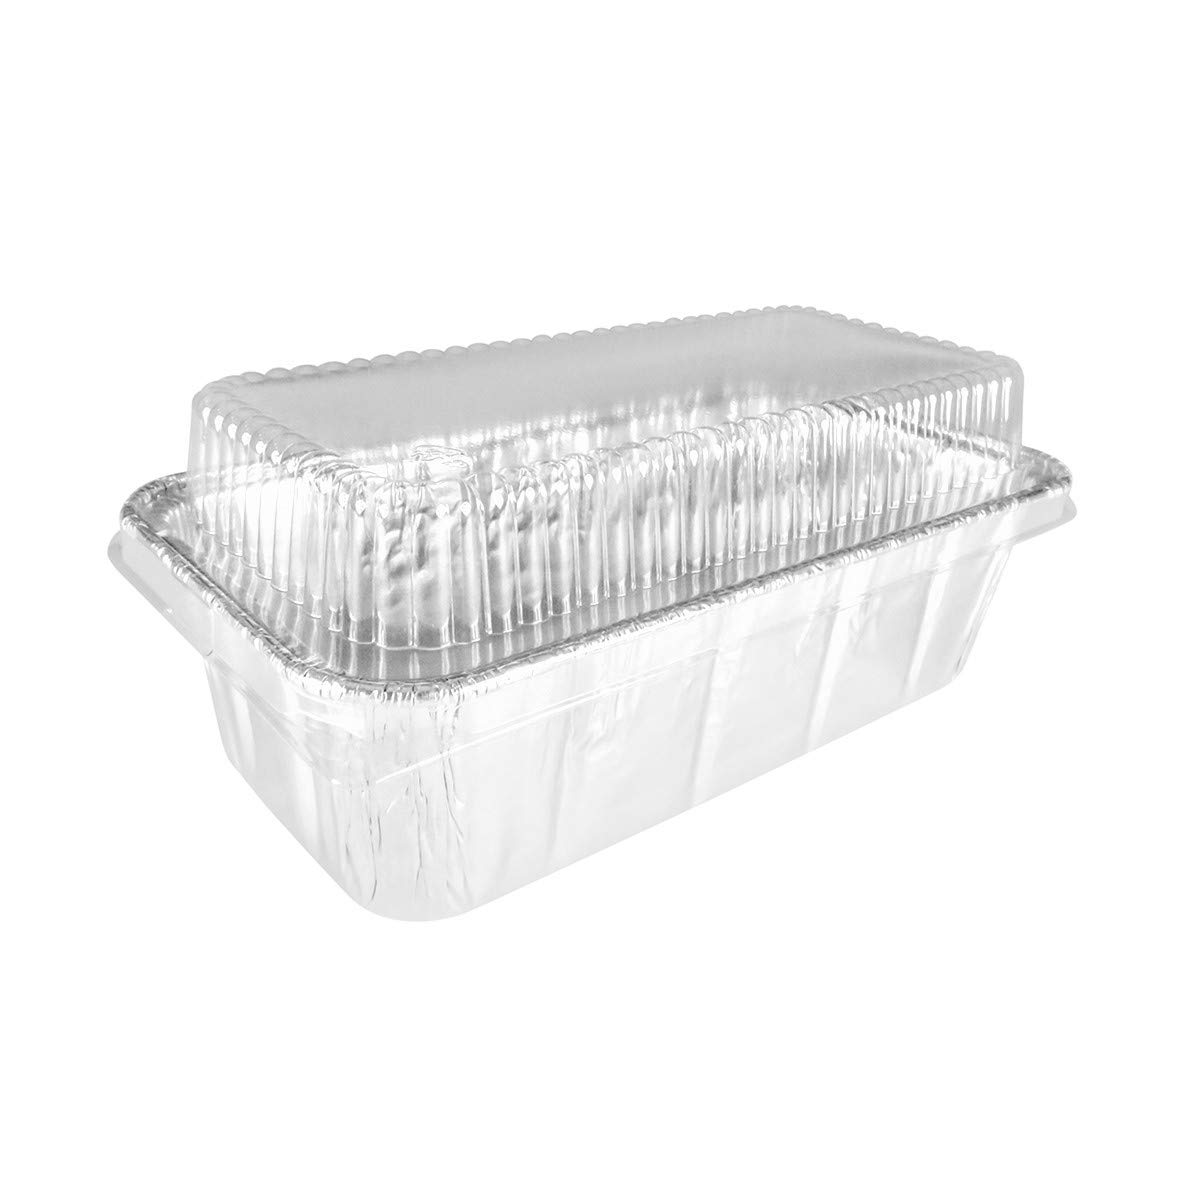 Disposable Aluminum 2 Lb. Loaf Pan with Clear Plastic Snap on Lid #5100P (25)